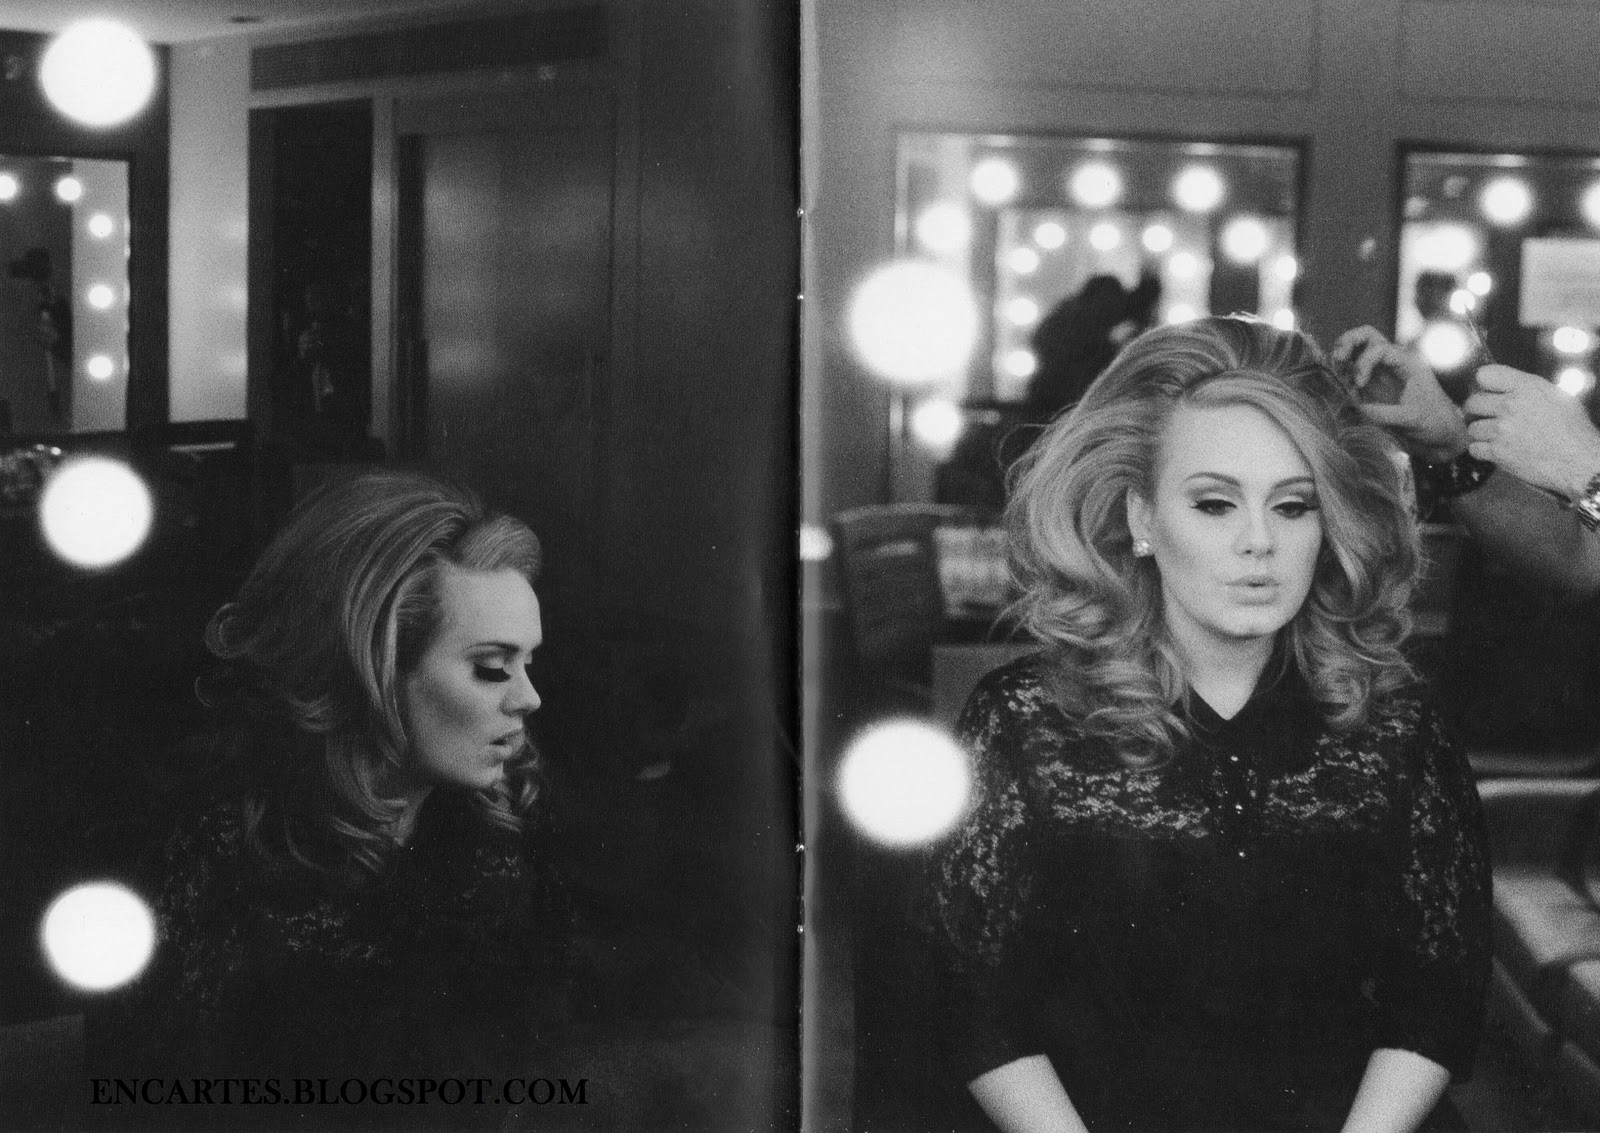 http://4.bp.blogspot.com/-WxJj-kcchTo/T7lWqQ-dC_I/AAAAAAAAAqg/a2vKIBjZn7A/s1600/Adele+-+Live+At+The+Royal+Albert+Hall+-+Booklet+(3-8).jpg